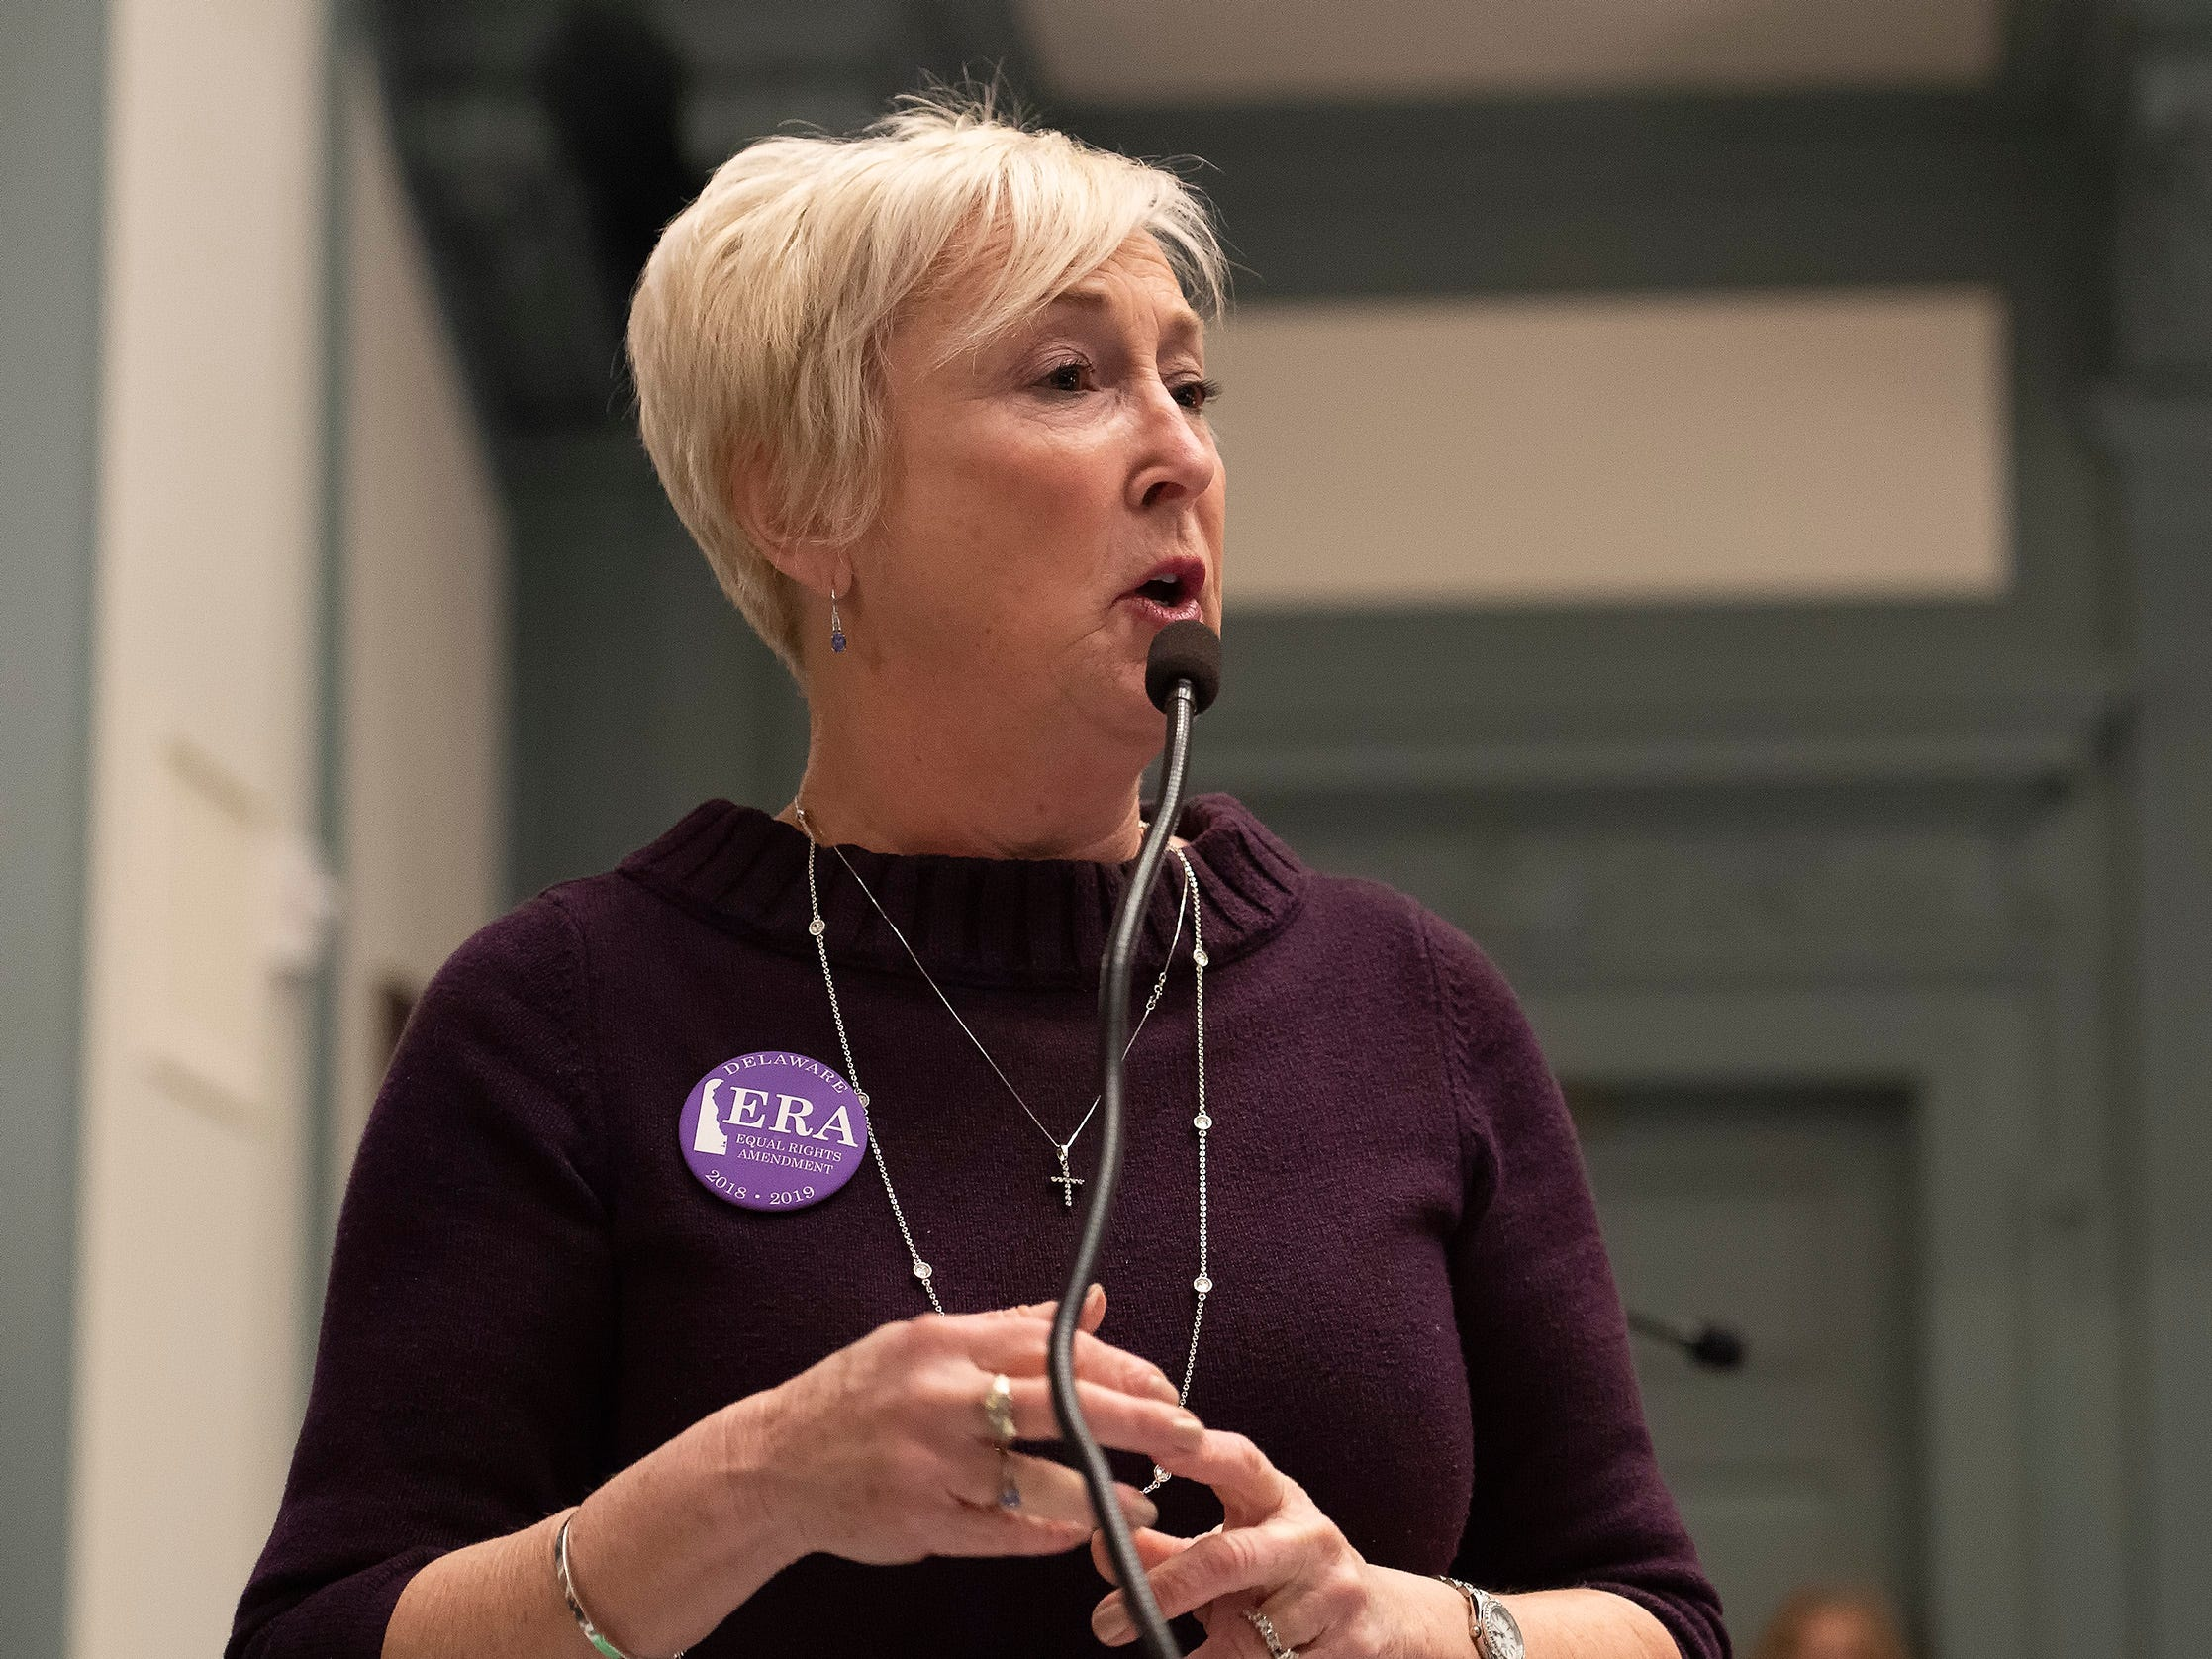 Ruth Briggs King, R-Georgetown gives her remarks in support of House Bill 1, equal rights amendment to the state constitution, during session at Legislative Hall in Dover.